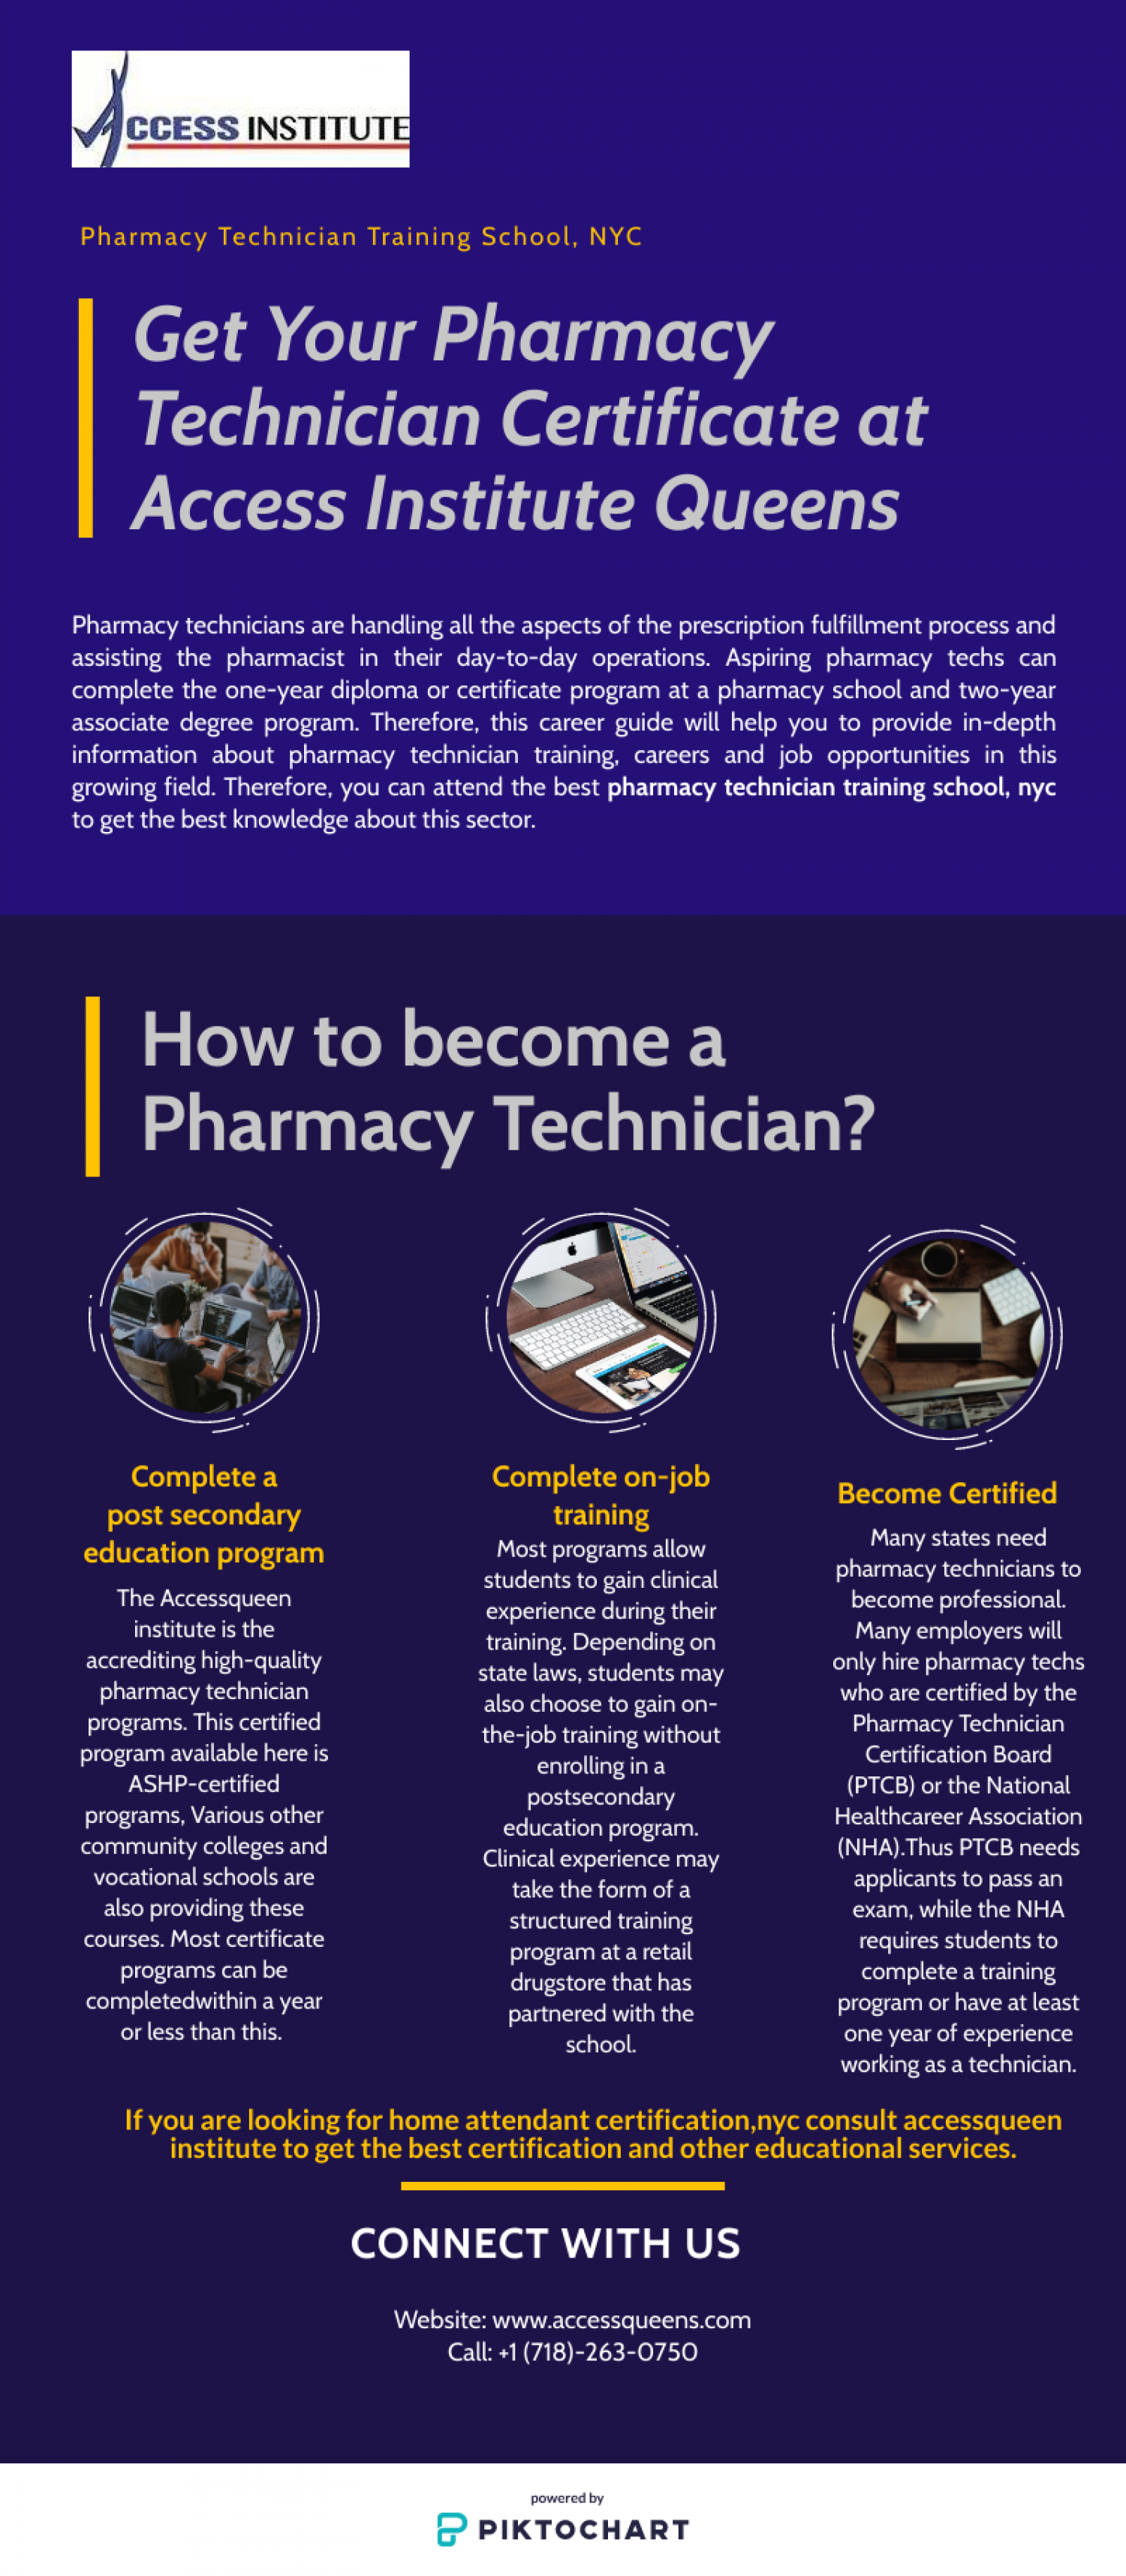 GetYour Pharmacy Technician Certificate at Access Institute Queens Infographic